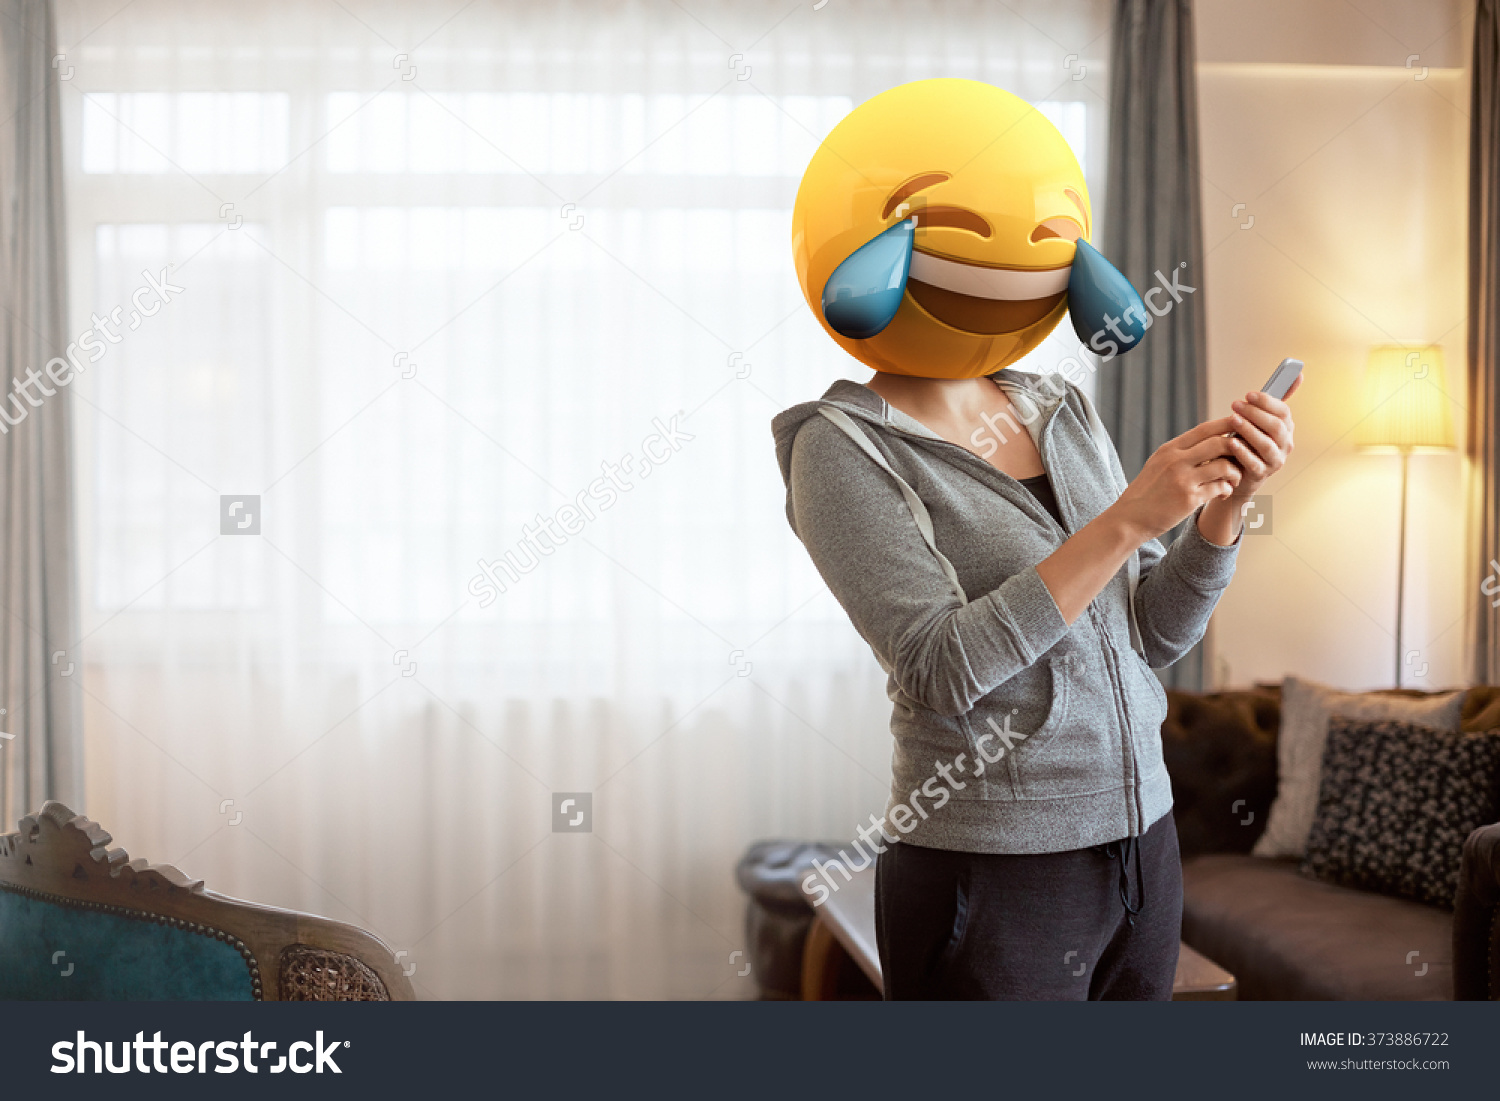 https://cdn.discordapp.com/attachments/189466684938125312/247475669079031808/stock-photo-emoji-head-woman-woman-wearing-tears-of-joy-emoji-masks-while-looking-at-her-phone-this-emoji-is-373886722.jpg